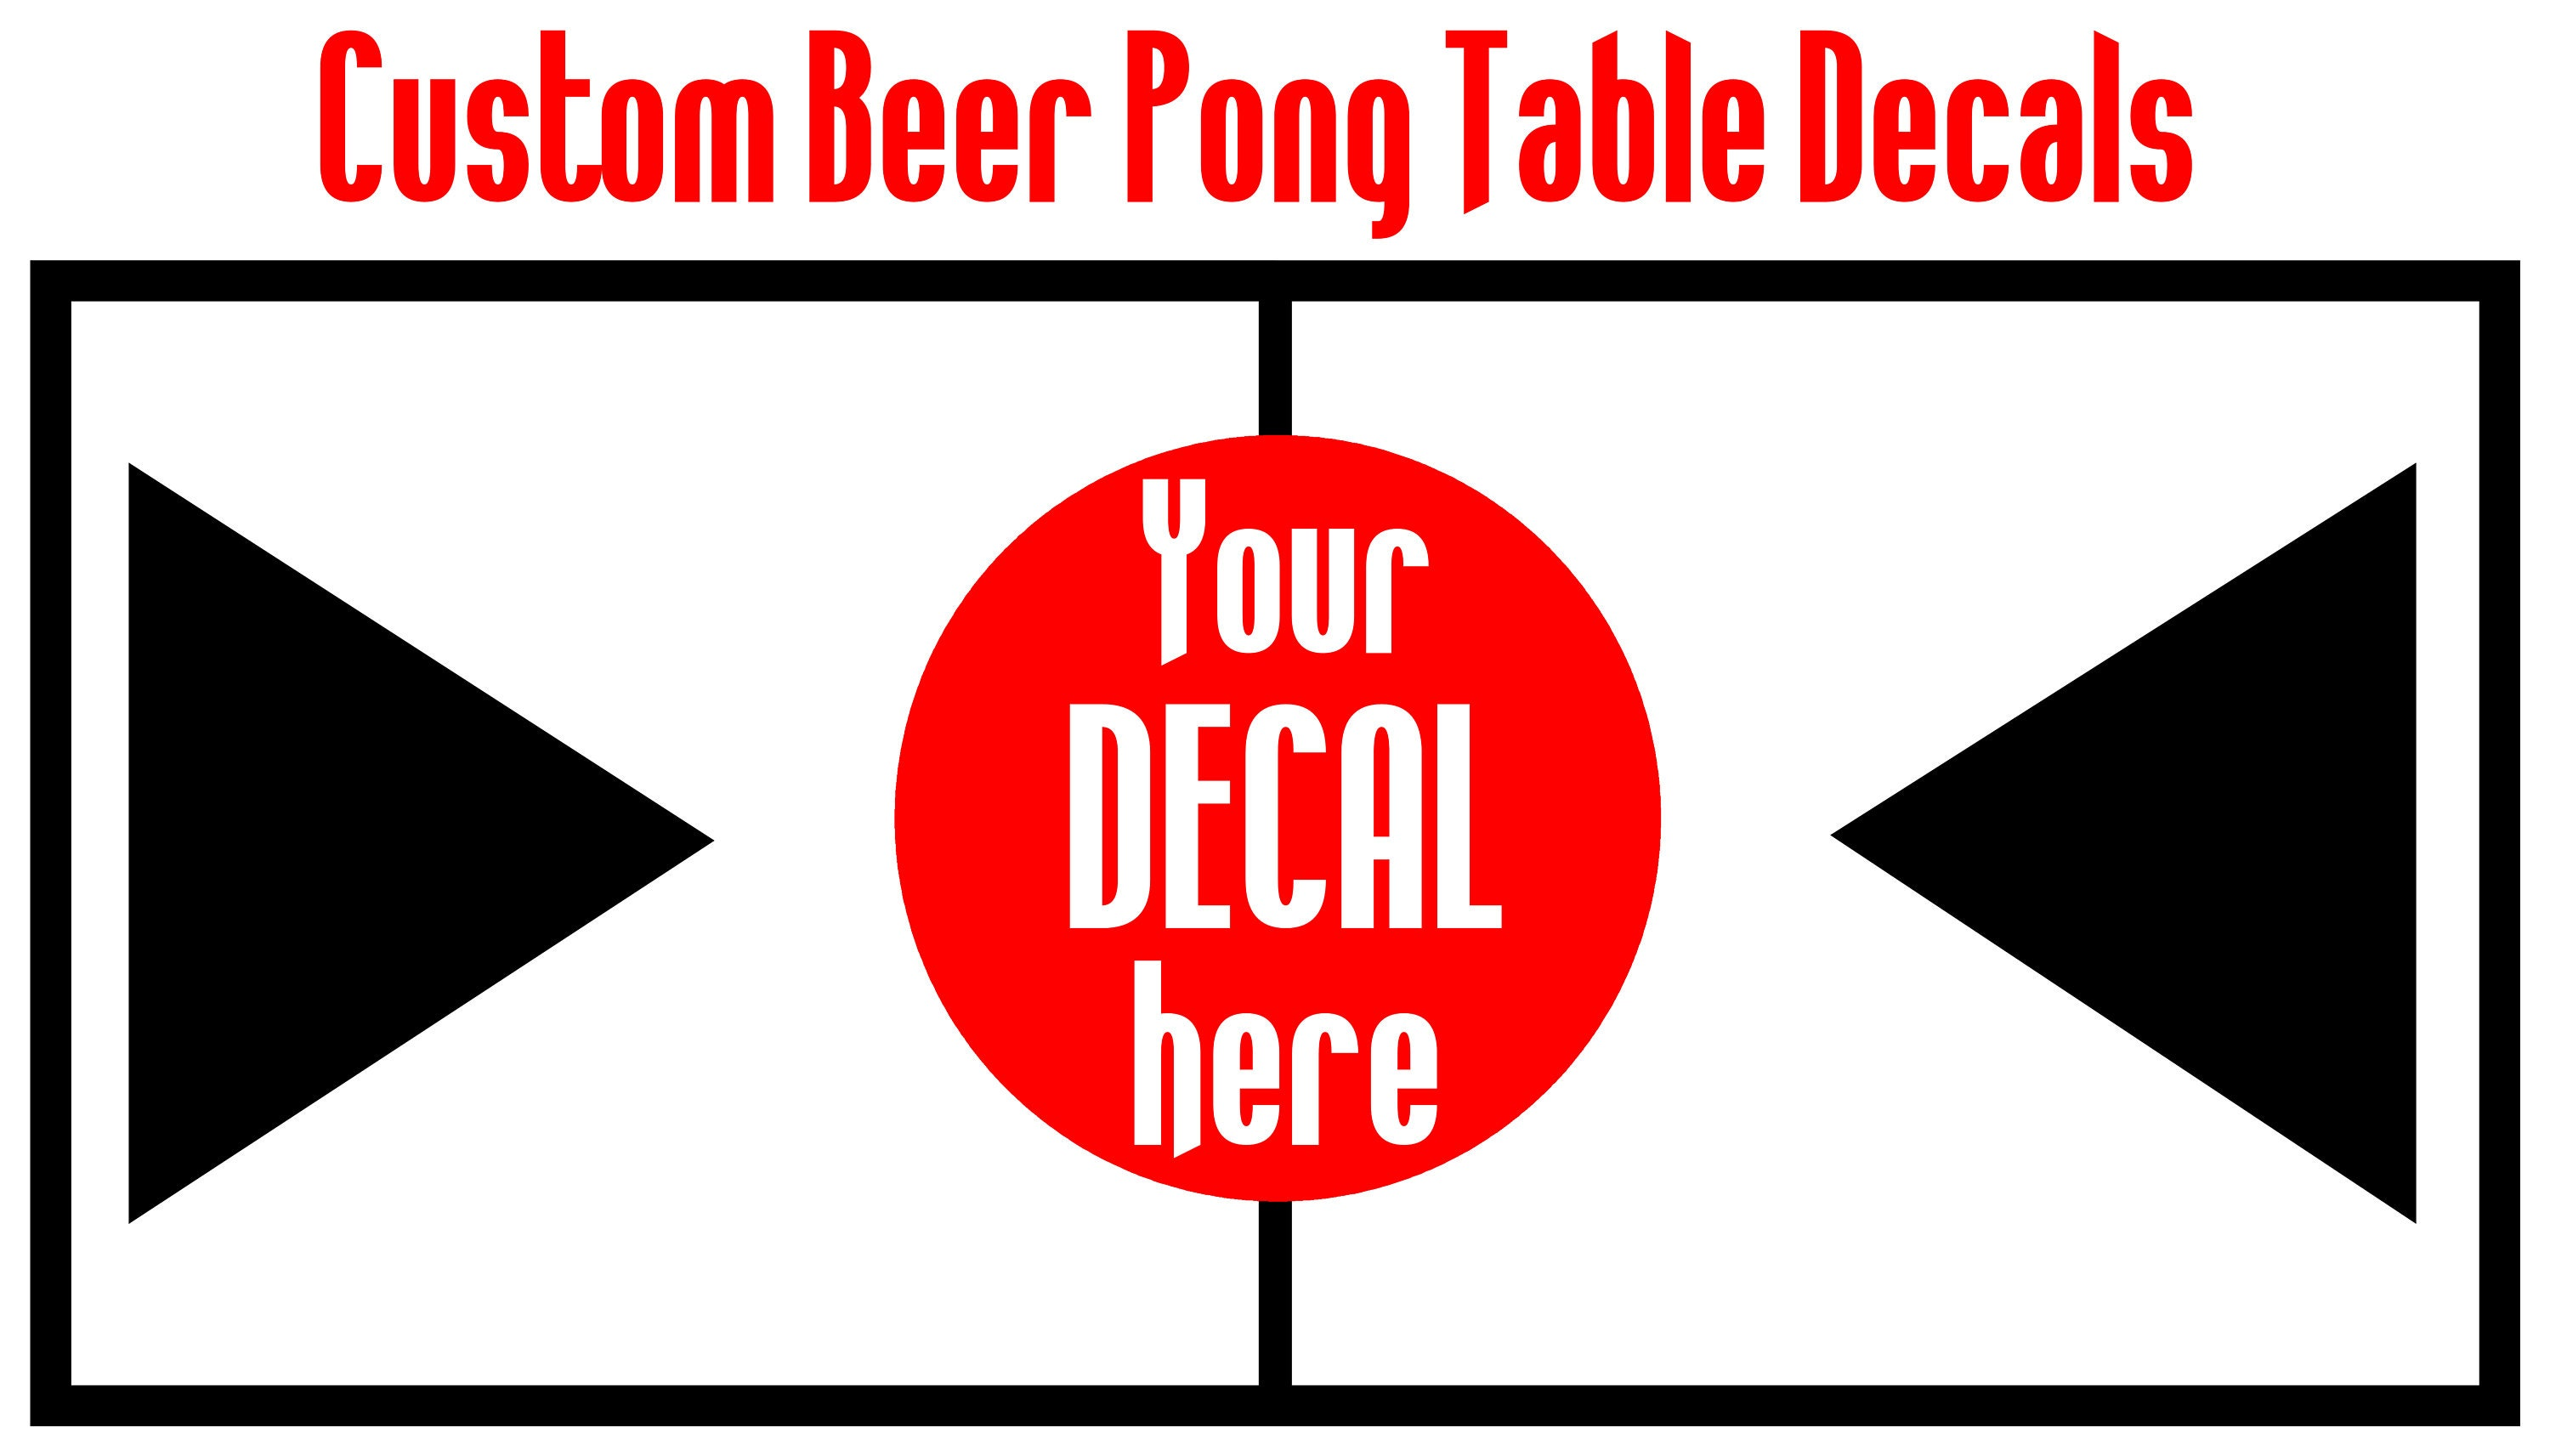 Custom Beer Pong Table Decals Beer Pong Table Designs - Custom vinyl decals for beer pong tables